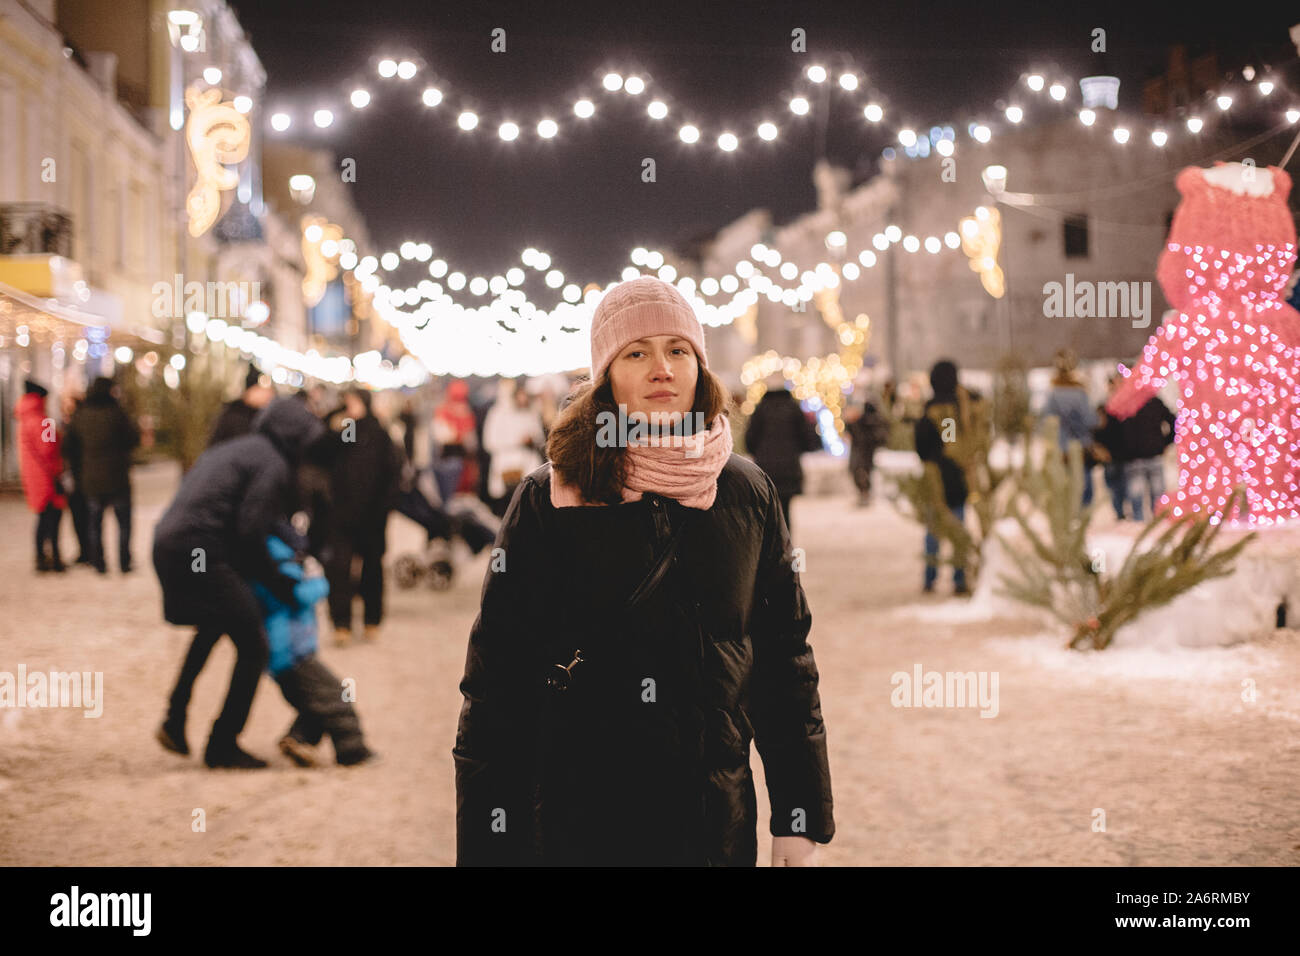 Young woman wearing warm clothing standing in brightly lit street Stock Photo